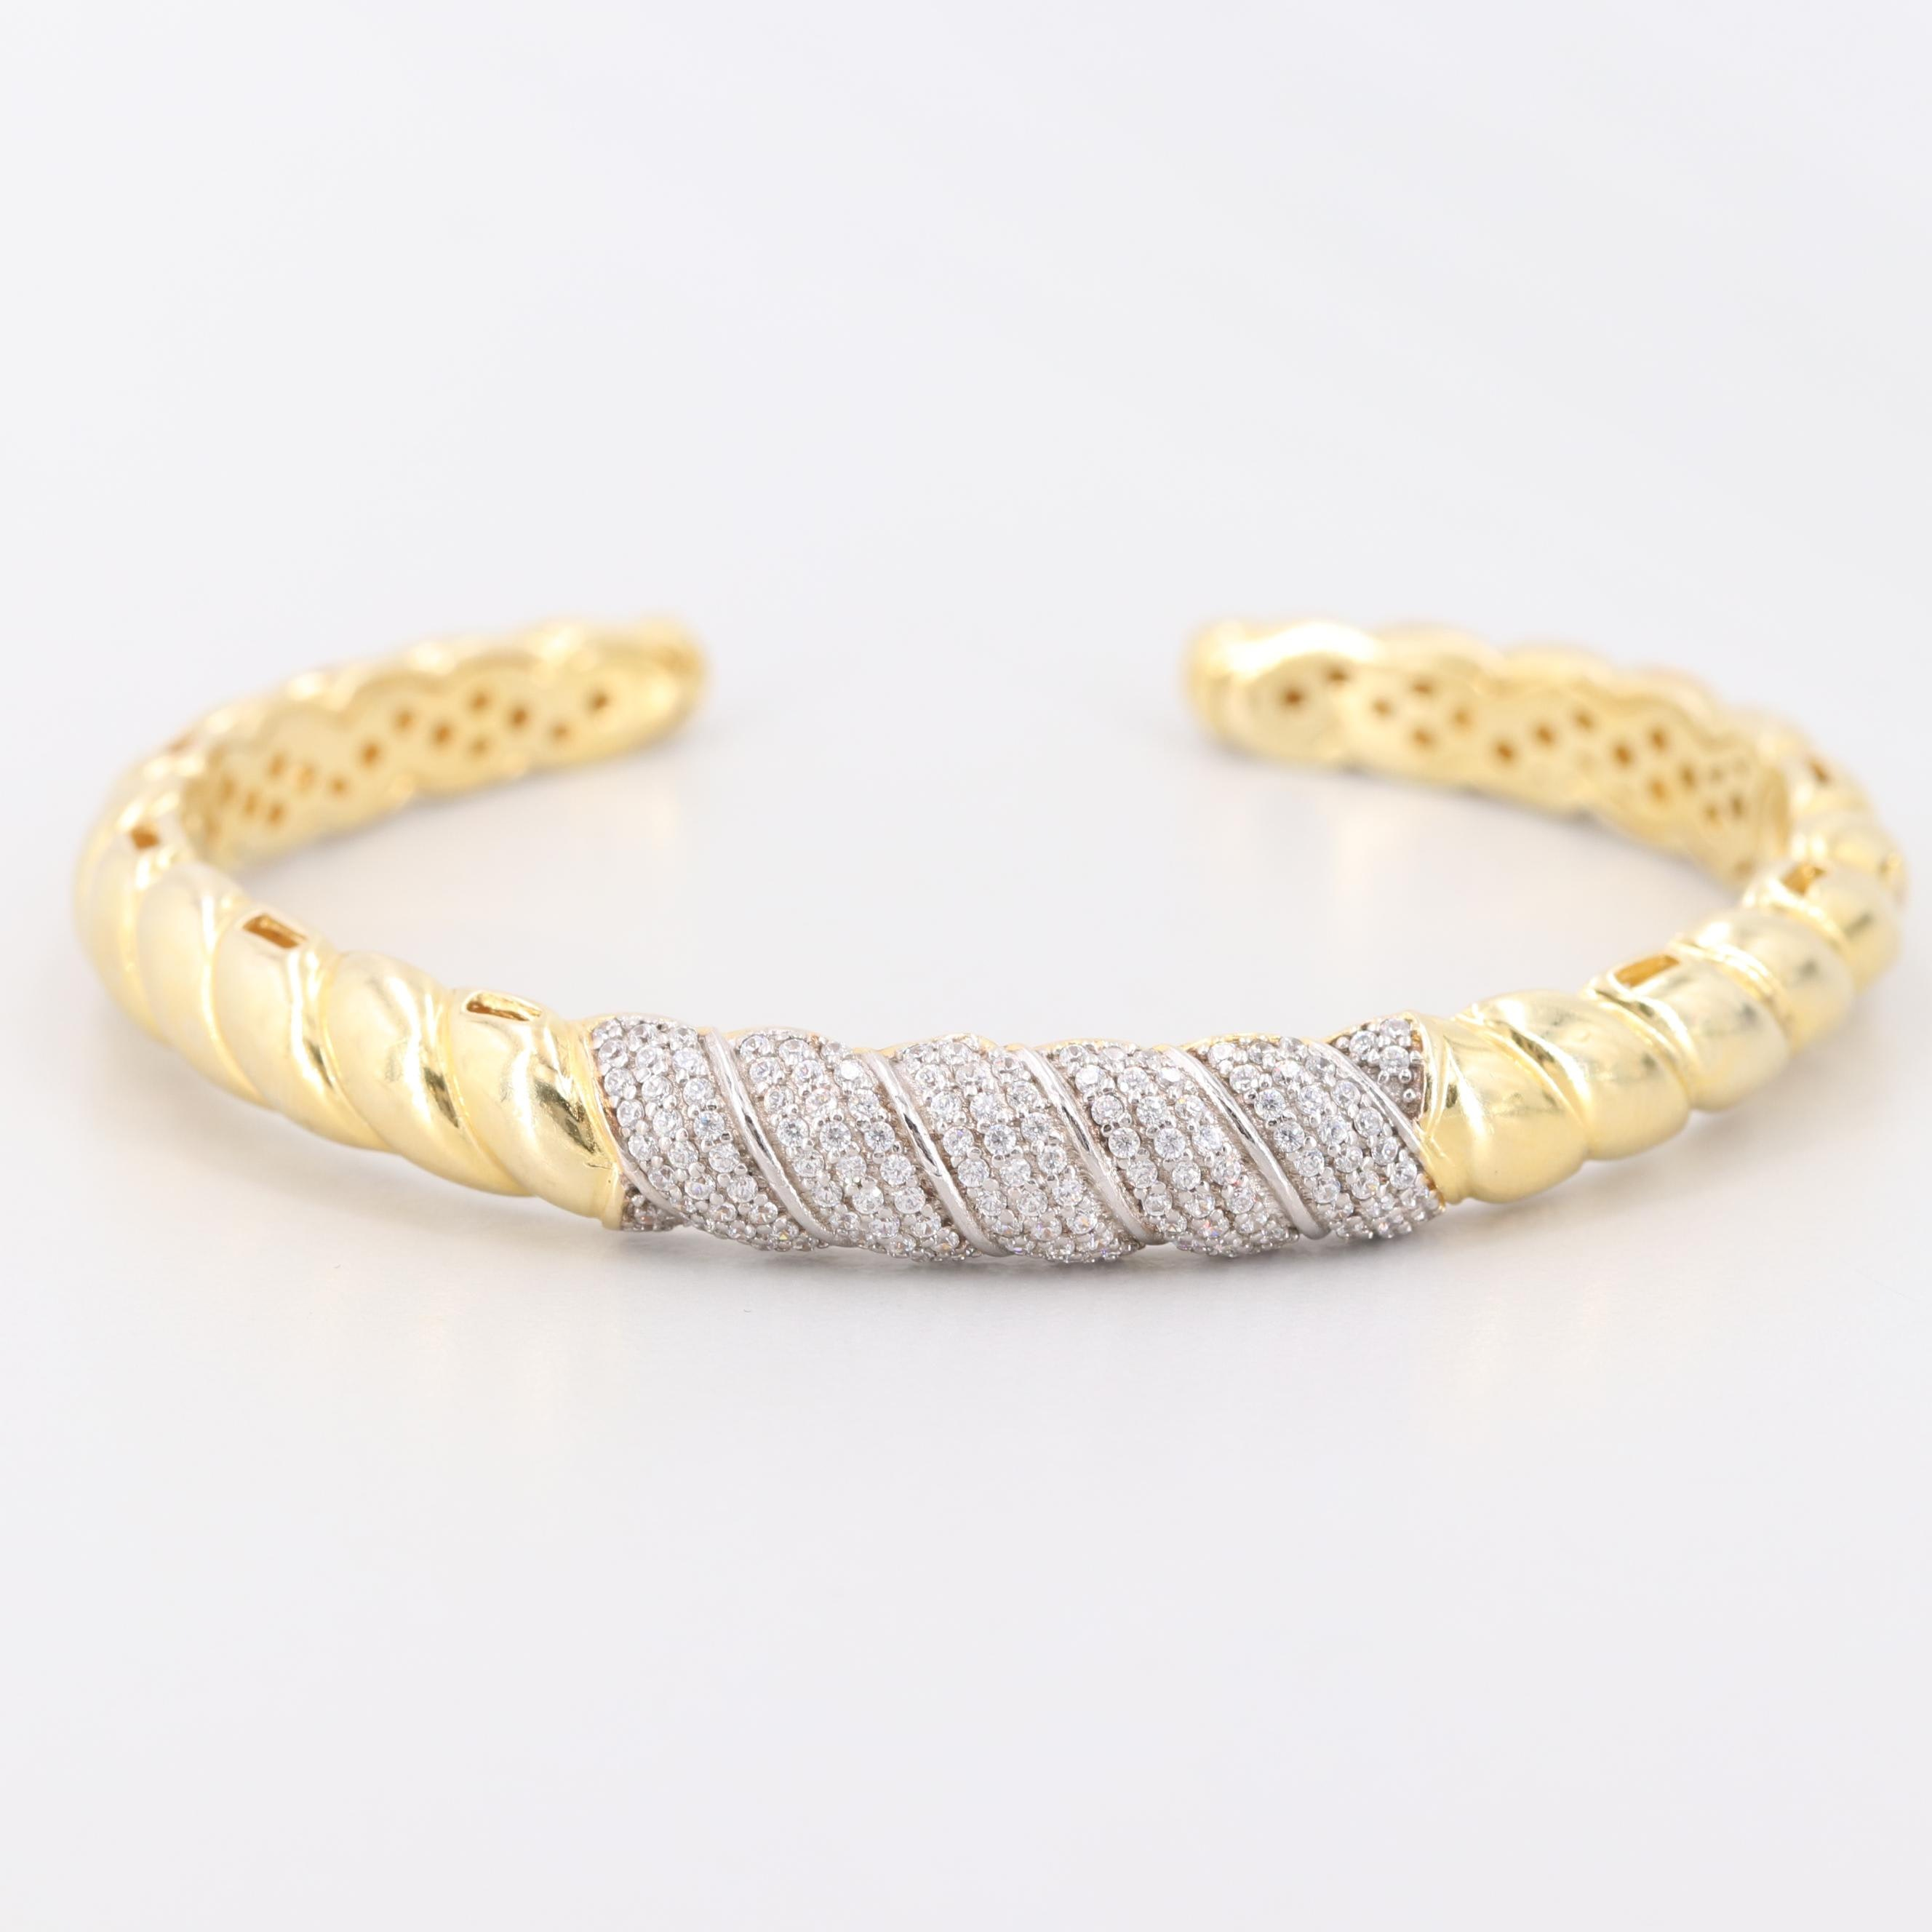 Gold Wash on Sterling Silver Cubic Zirconia Cuff Bracelet